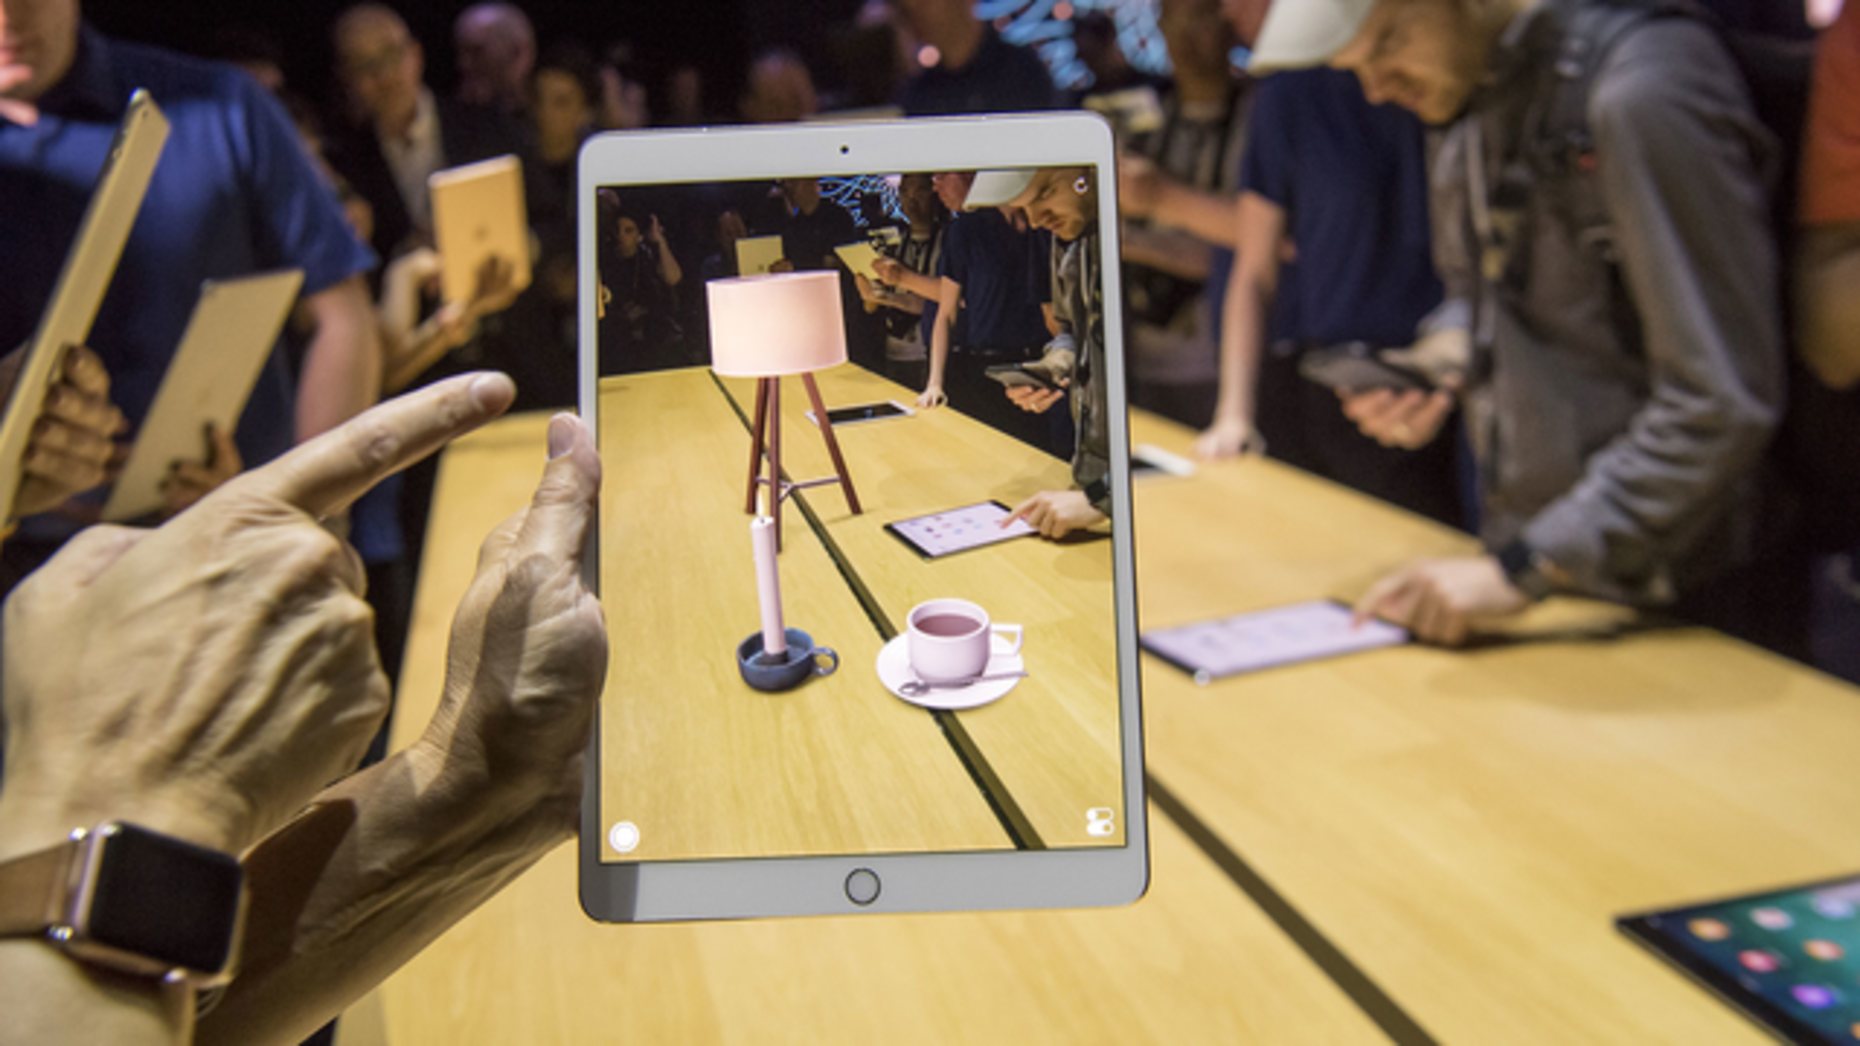 ARKit being demonstrated on an iPad at WWDC in June. Photo by Bloomberg